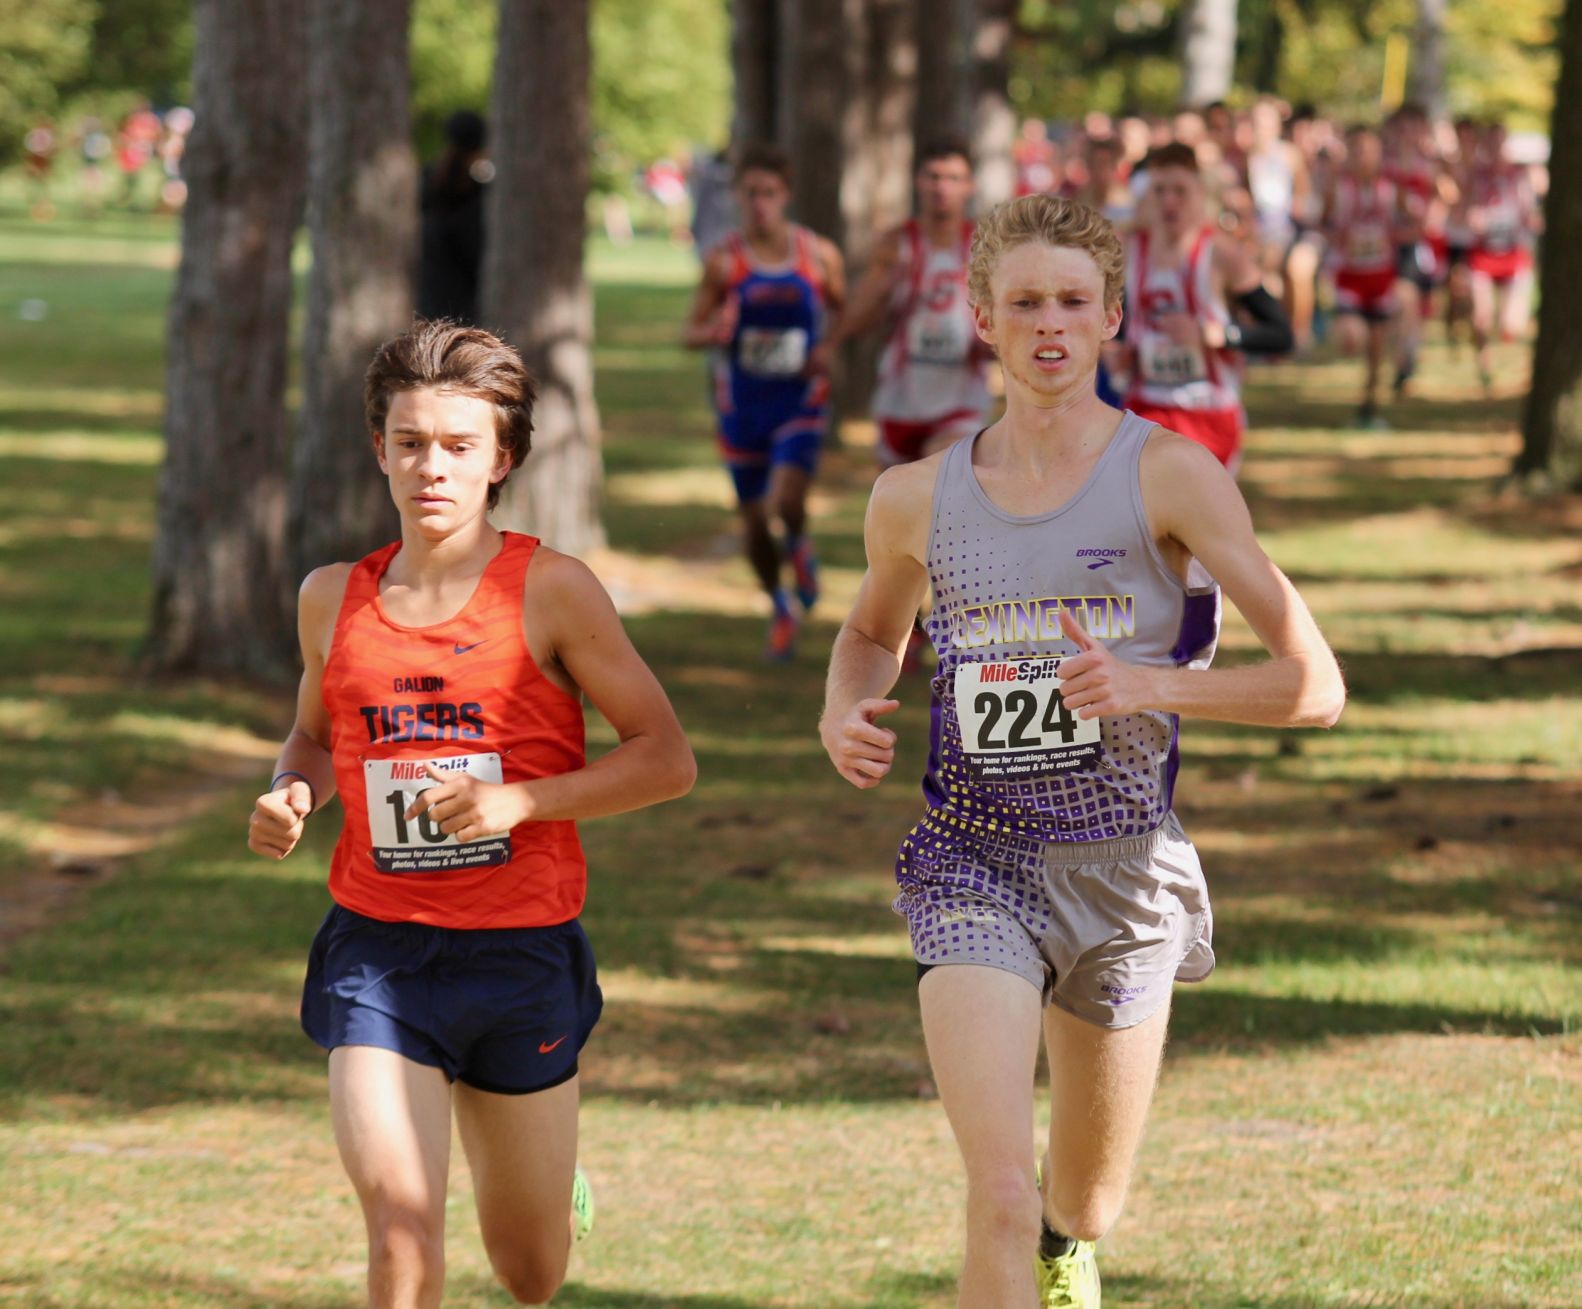 Johnston, Lex aiming for another trip to state